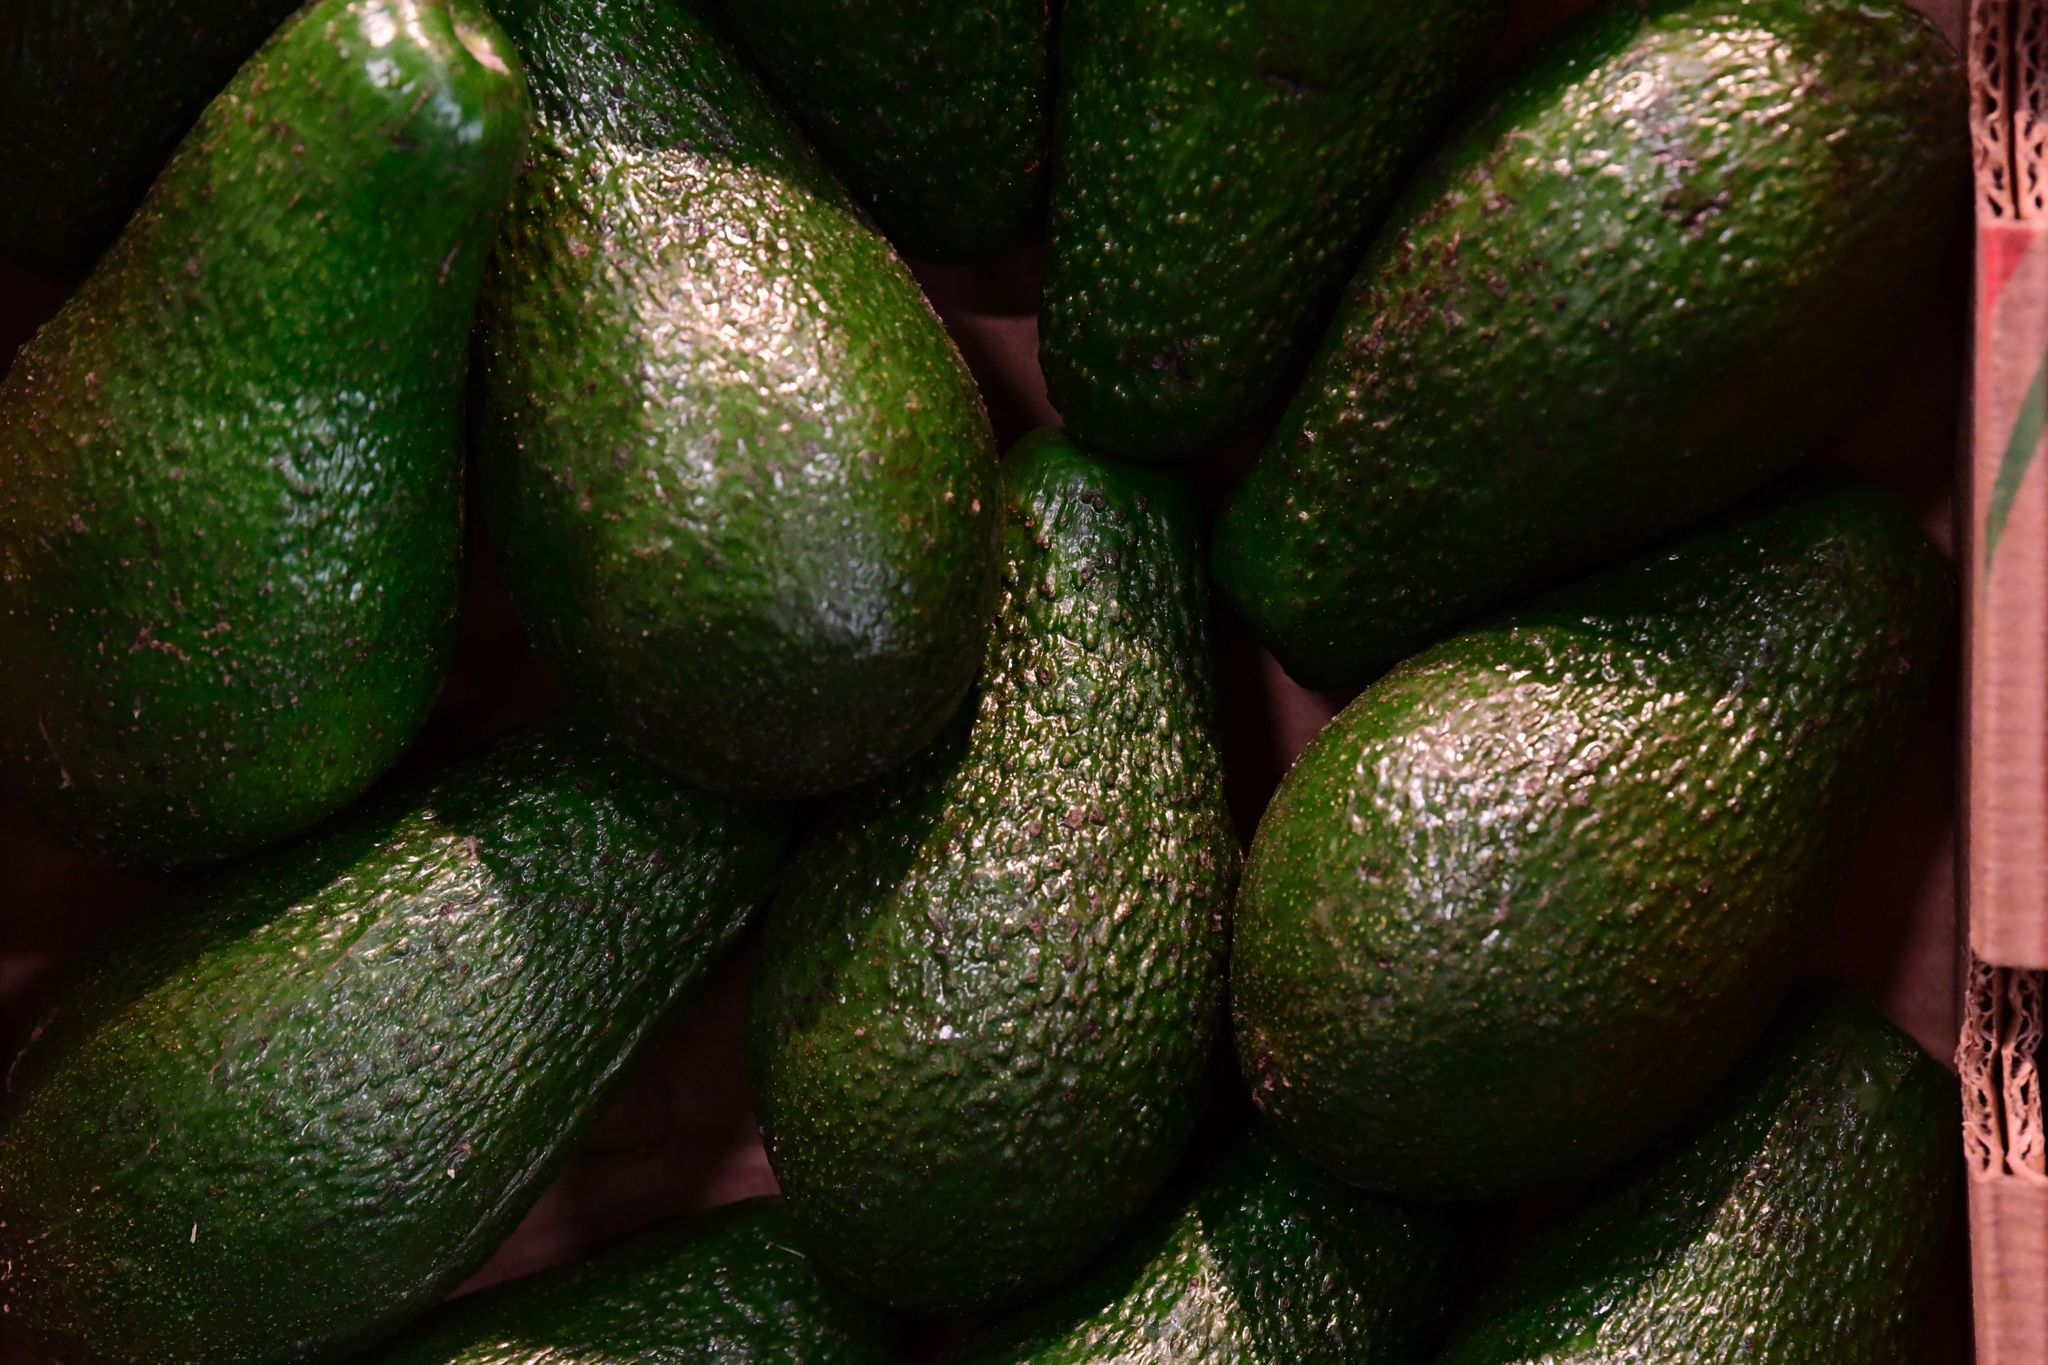 Avocados at market